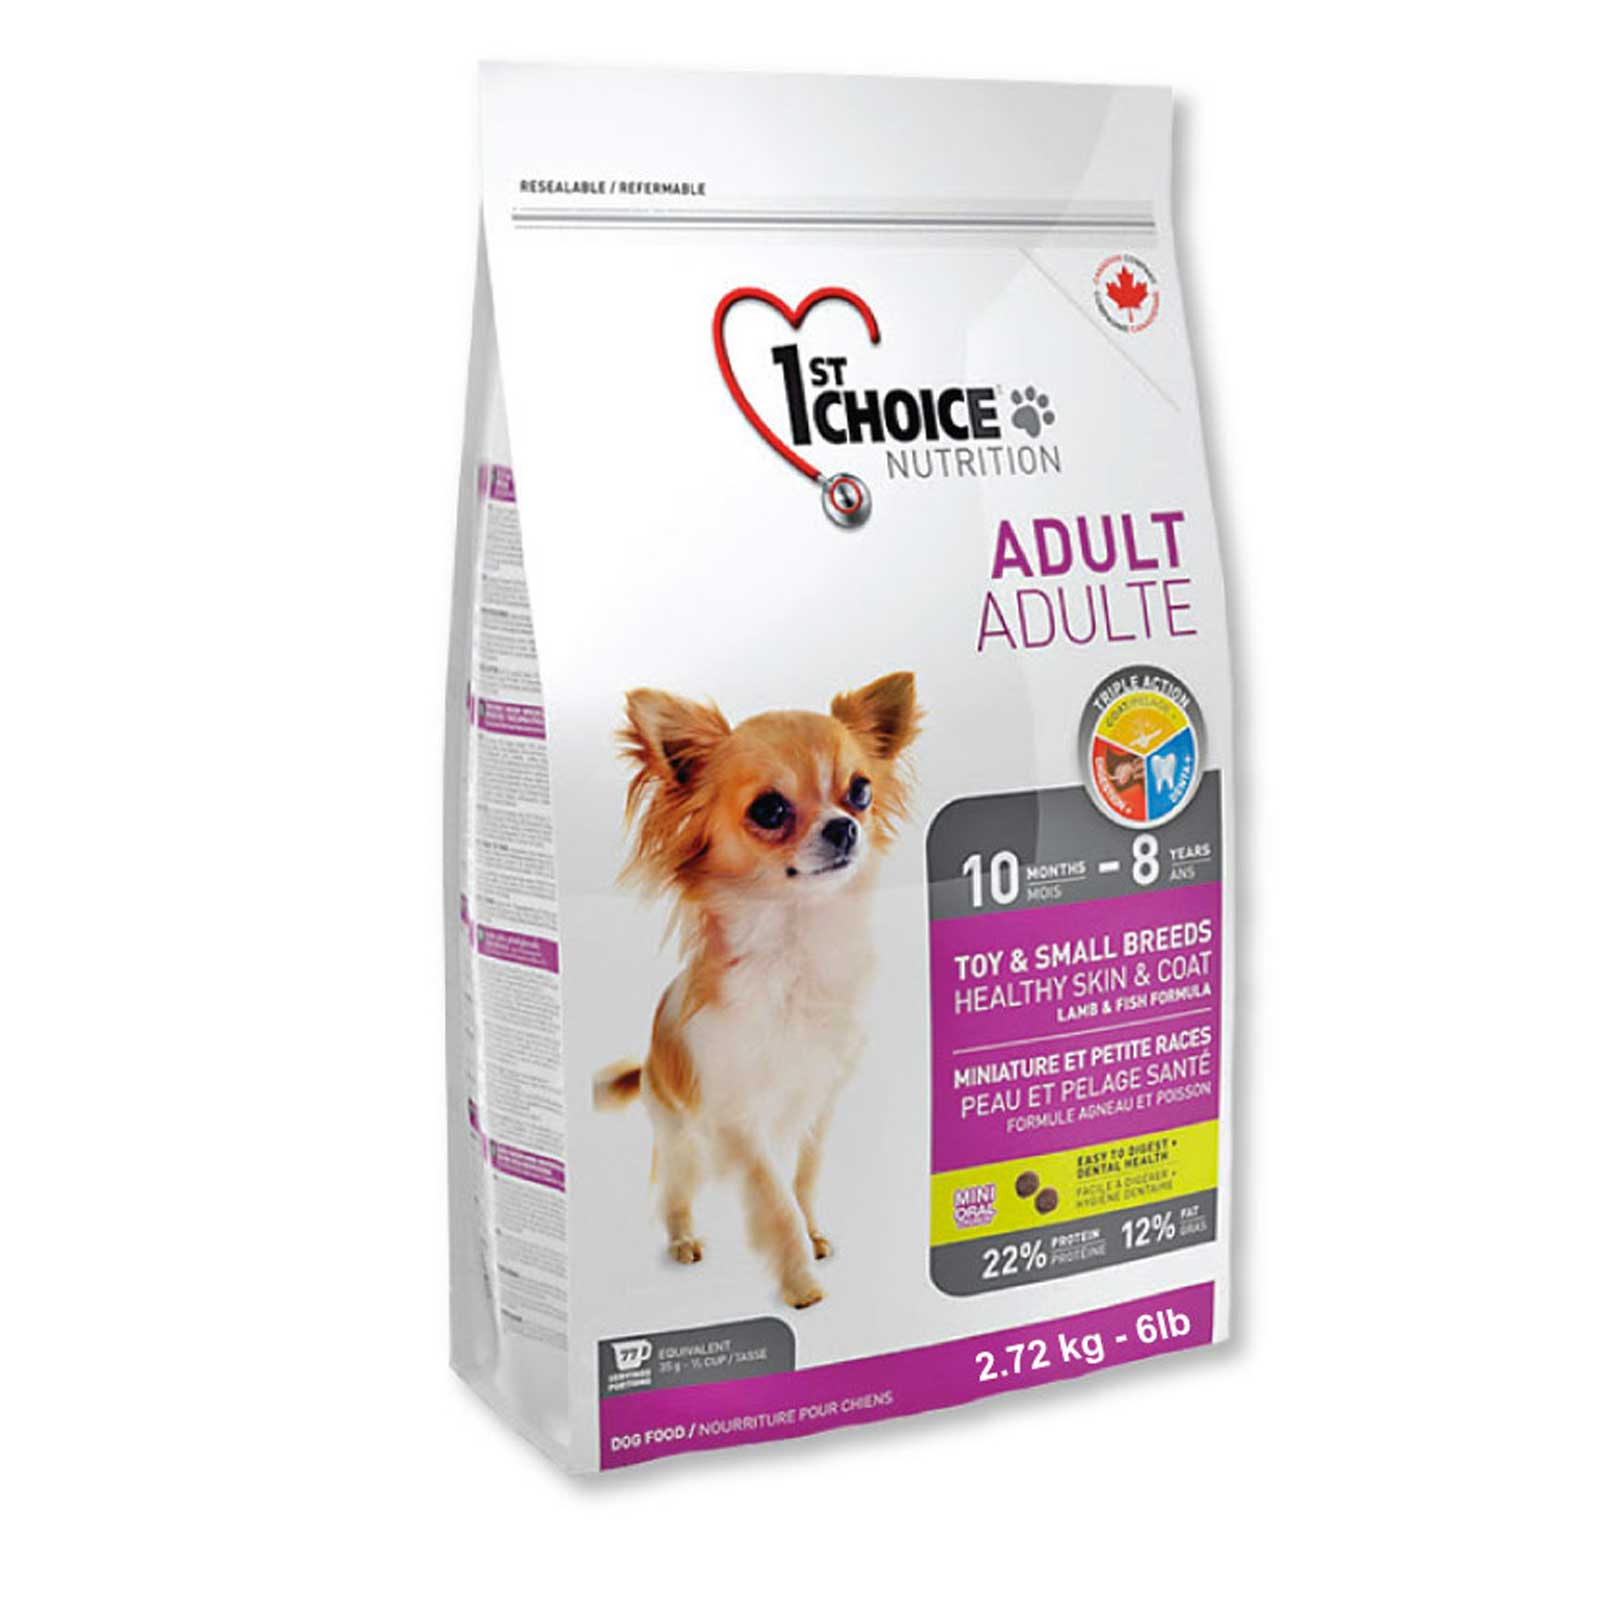 CROCCHETTE 1ST CHOICE CANE ADULTO - TAGLIA TOY & PICCOLA - SENSITIVE SKIN & COAT - 2,72 kg.